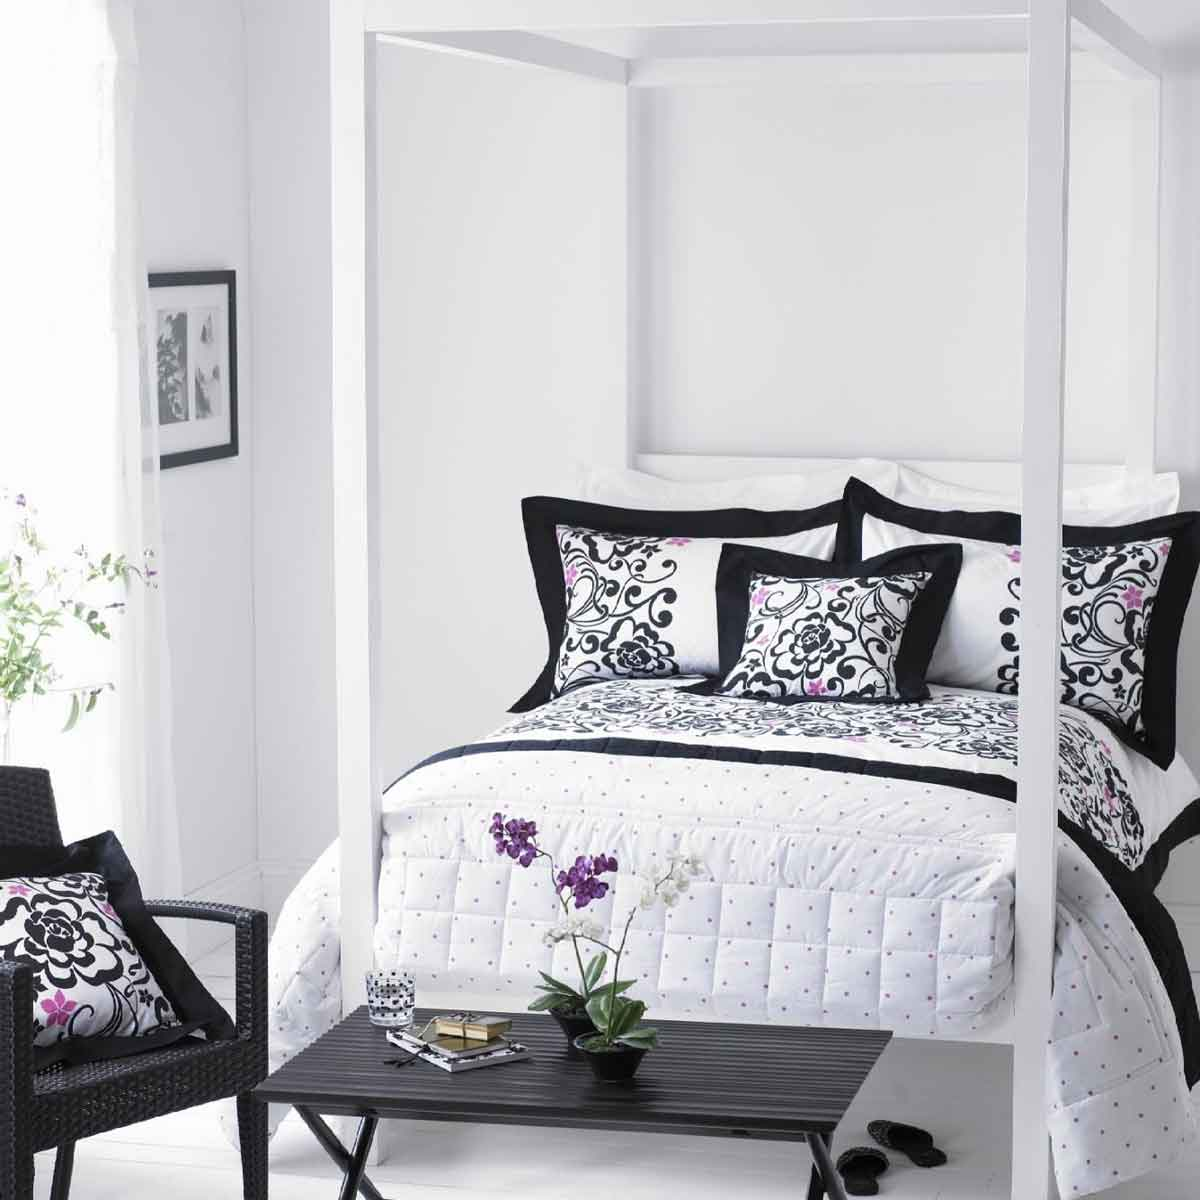 30 Groovy Black And White Bedroom Ideas - SloDive